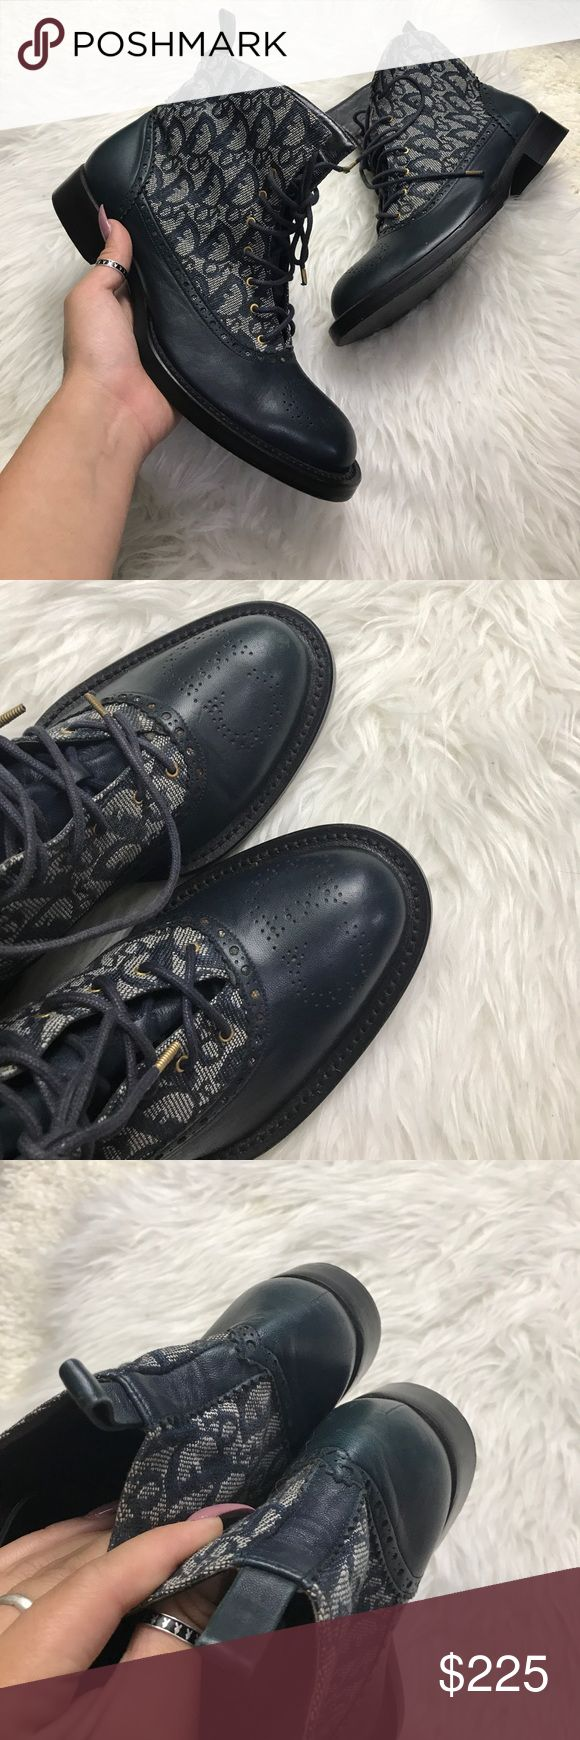 CHRISTIAN DIOR 8 38 MONOGRAM BOOTS SHOES BOOTIES 100% AUTHENTIC beautiful dior boots , .. very coveted monogram style , very uncommon and can be casual or not Christian Dior Shoes